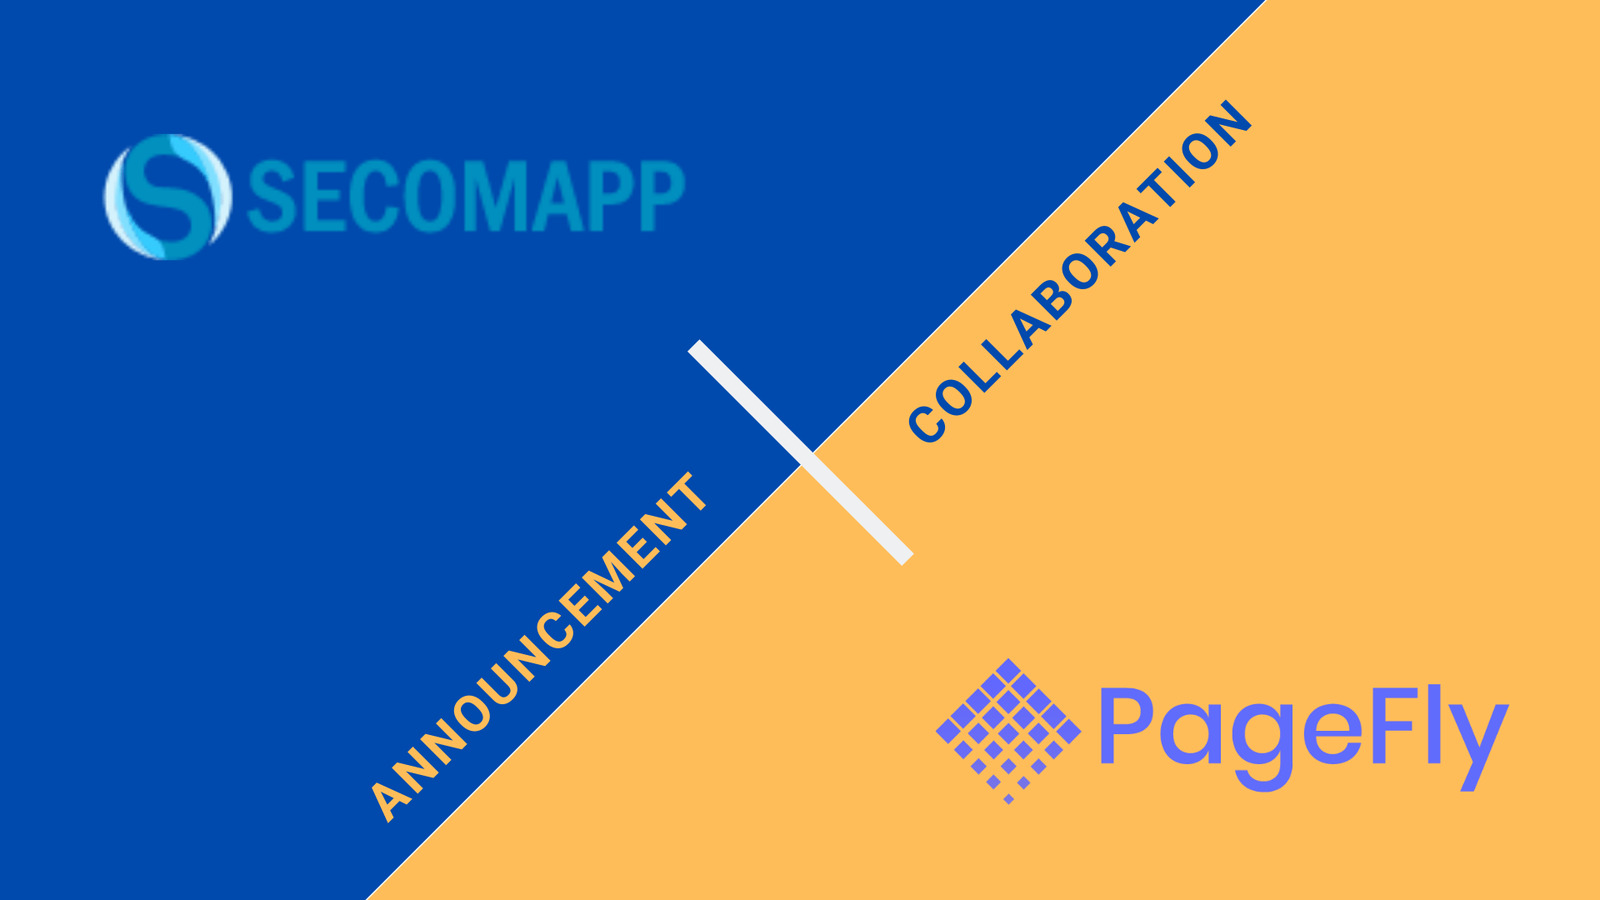 Announcing UpPromote's (formerly Secomapp) Collaboration with Pagefly